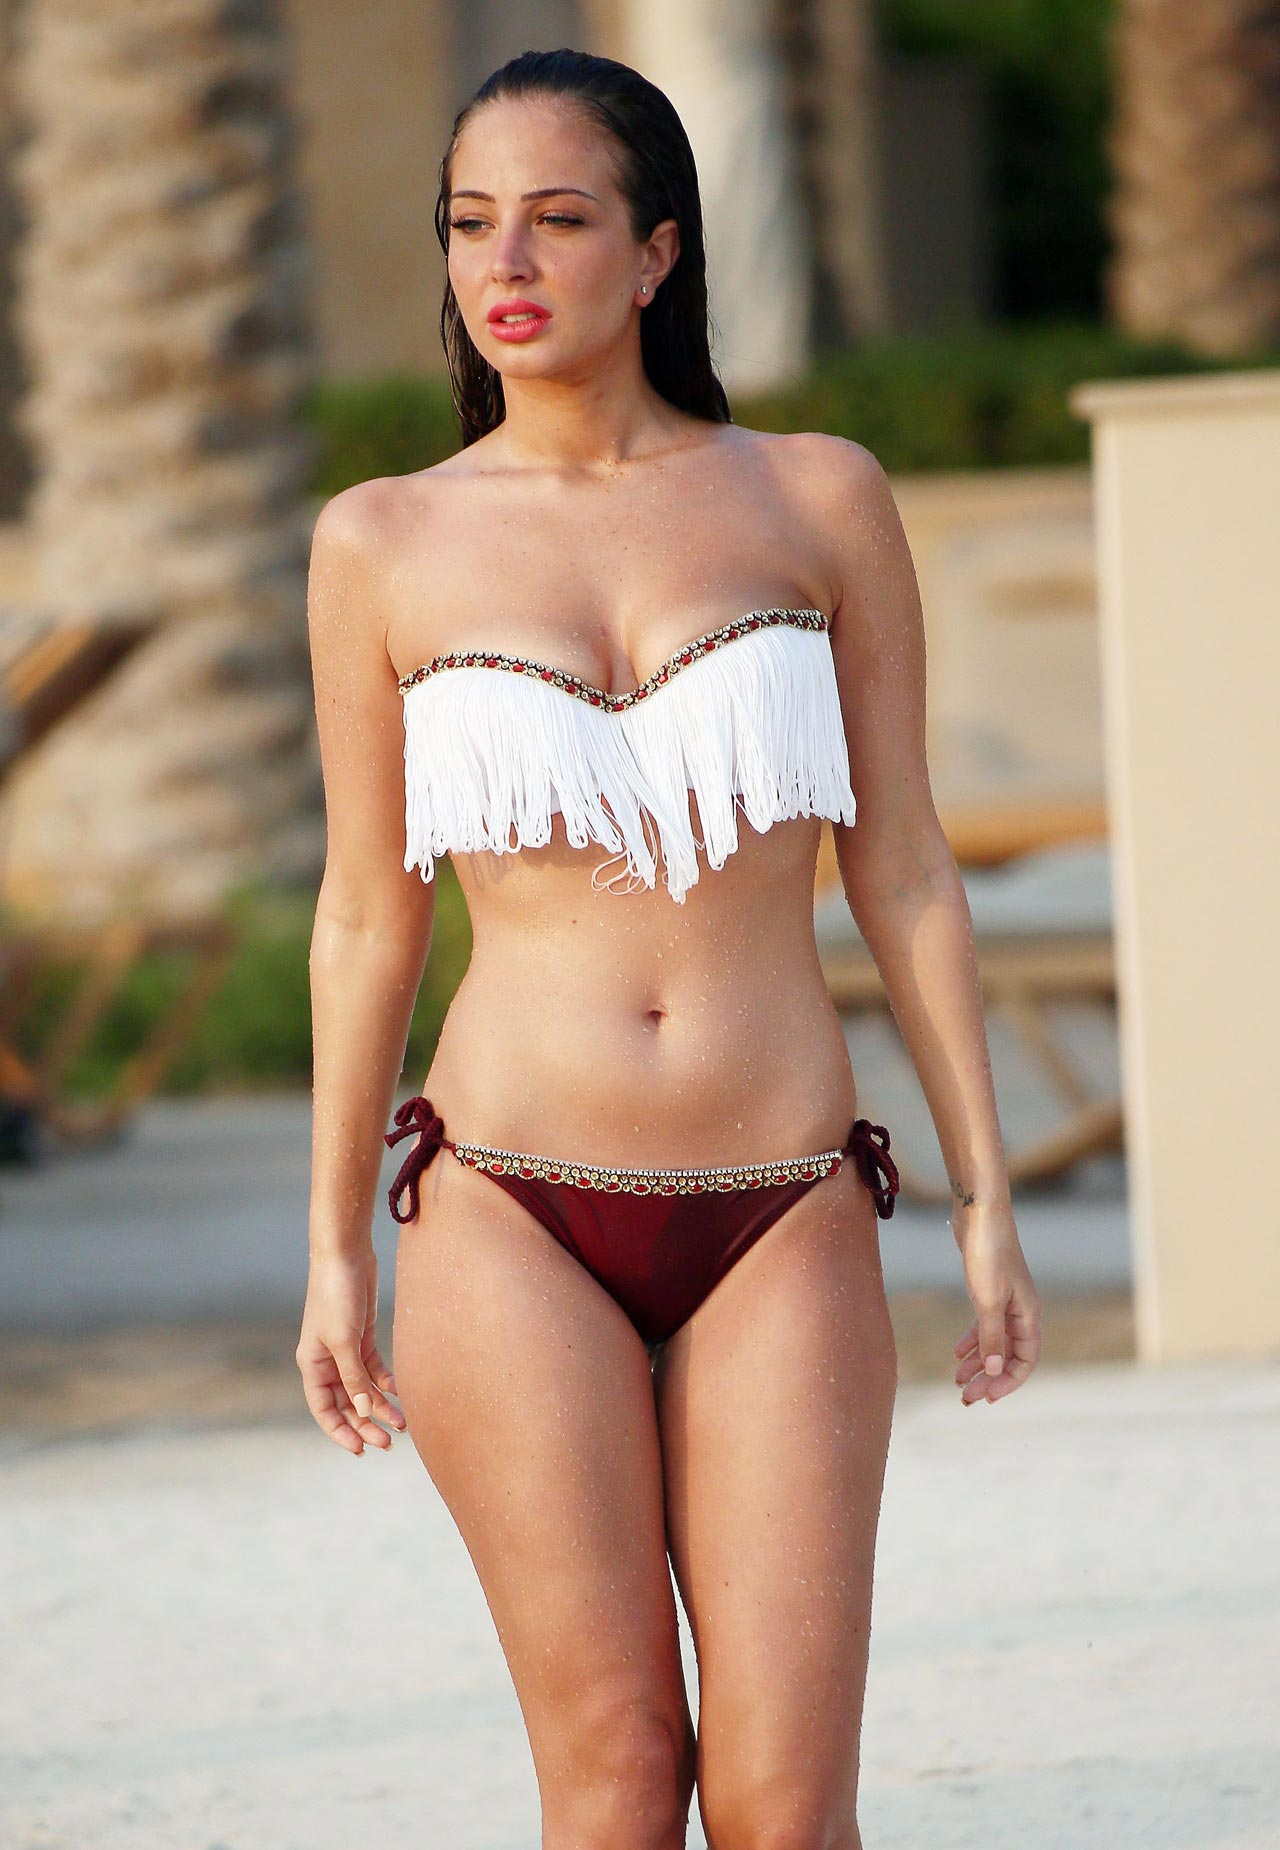 Tulisa Contostavlos In Bikini Dubai October 2013